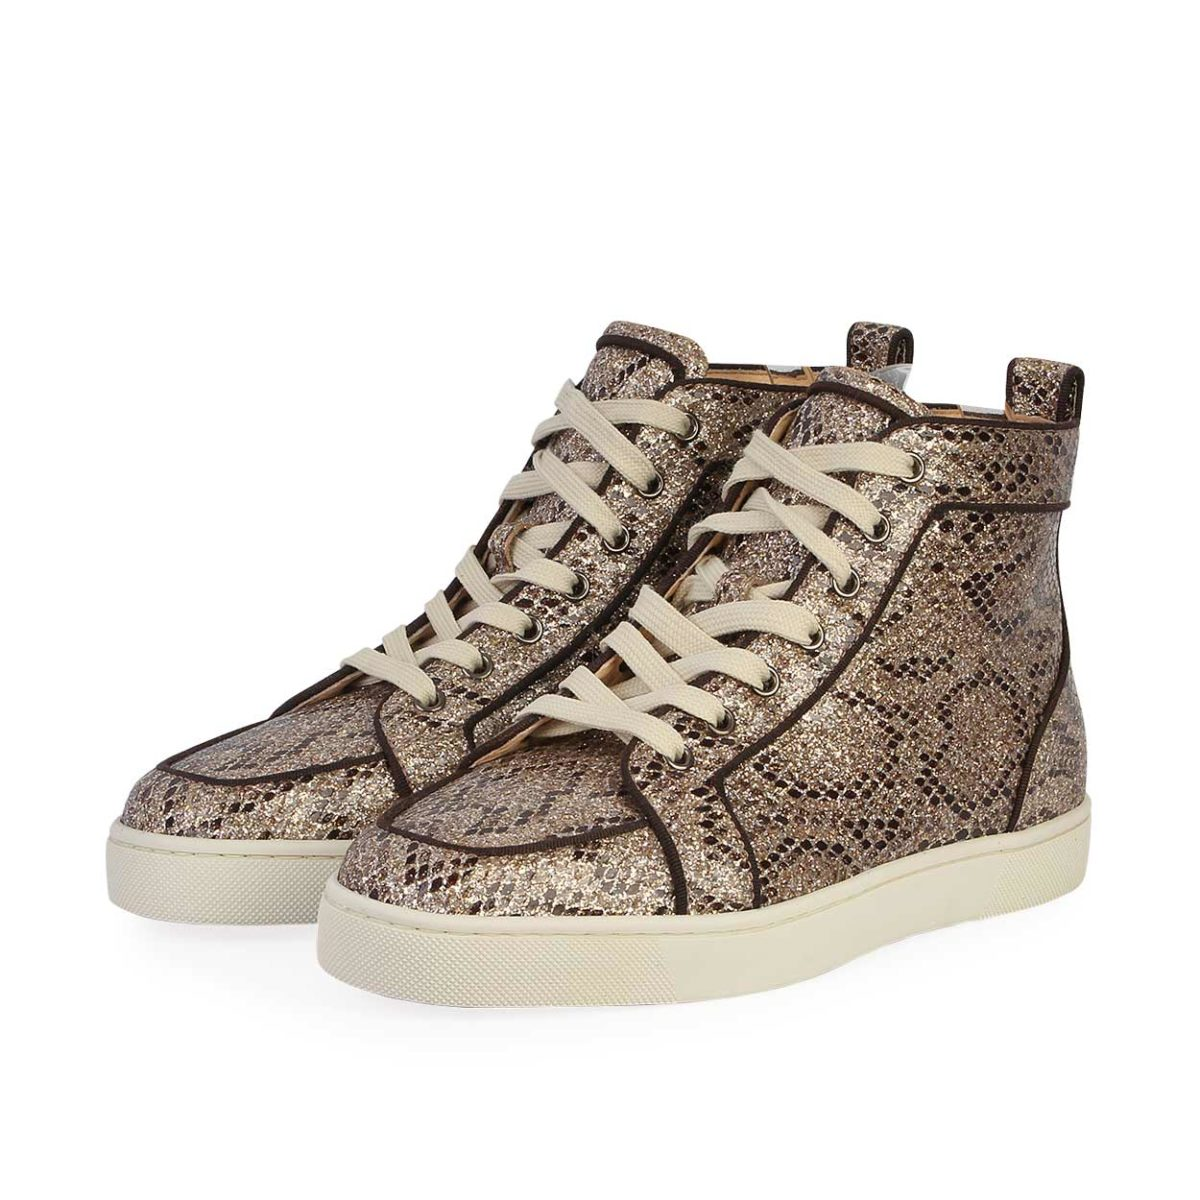 100% authentic dd4b1 ccd1b CHRISTIAN LOUBOUTIN Python Rantus Orlato High Top Sneakers Gold - S: 40  (6.5)